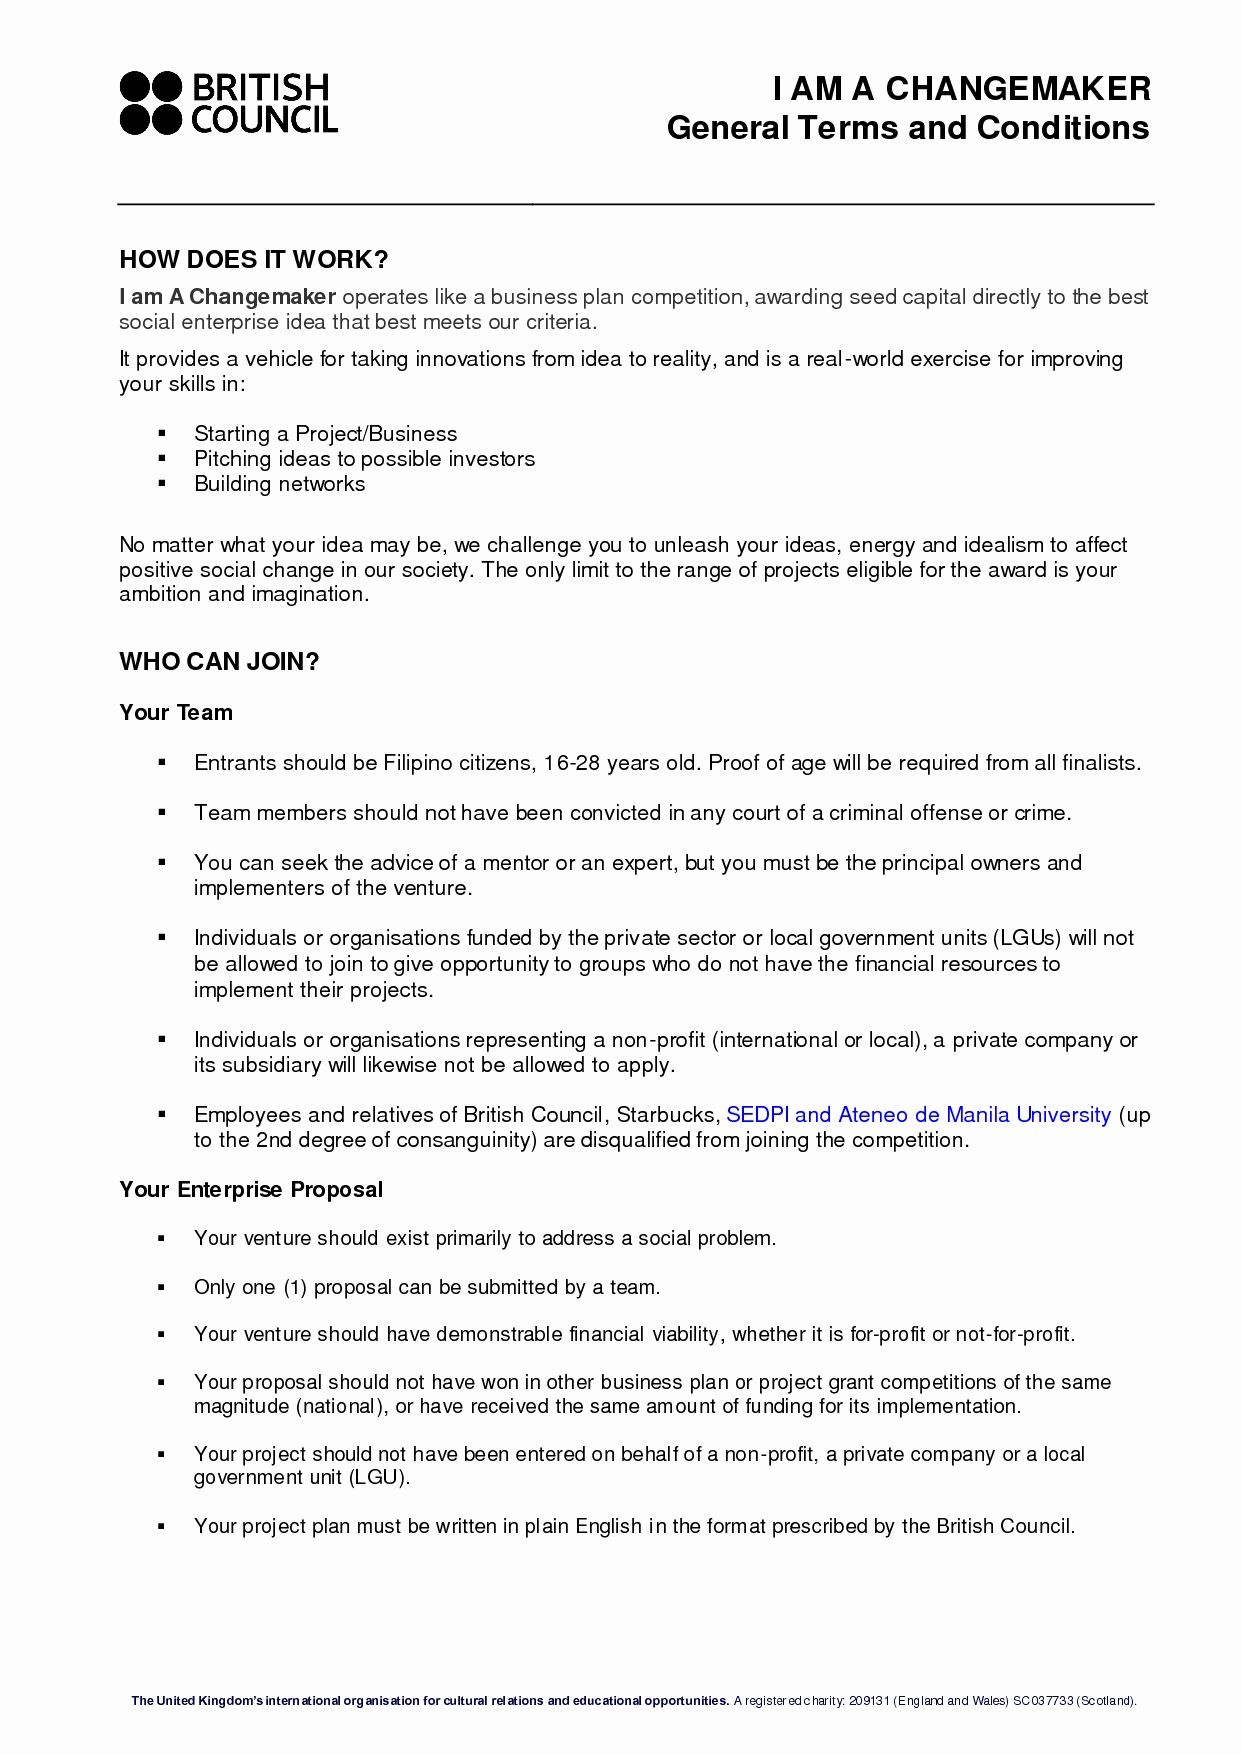 25 Lawn Service Proposal Template Free in 2020 Business